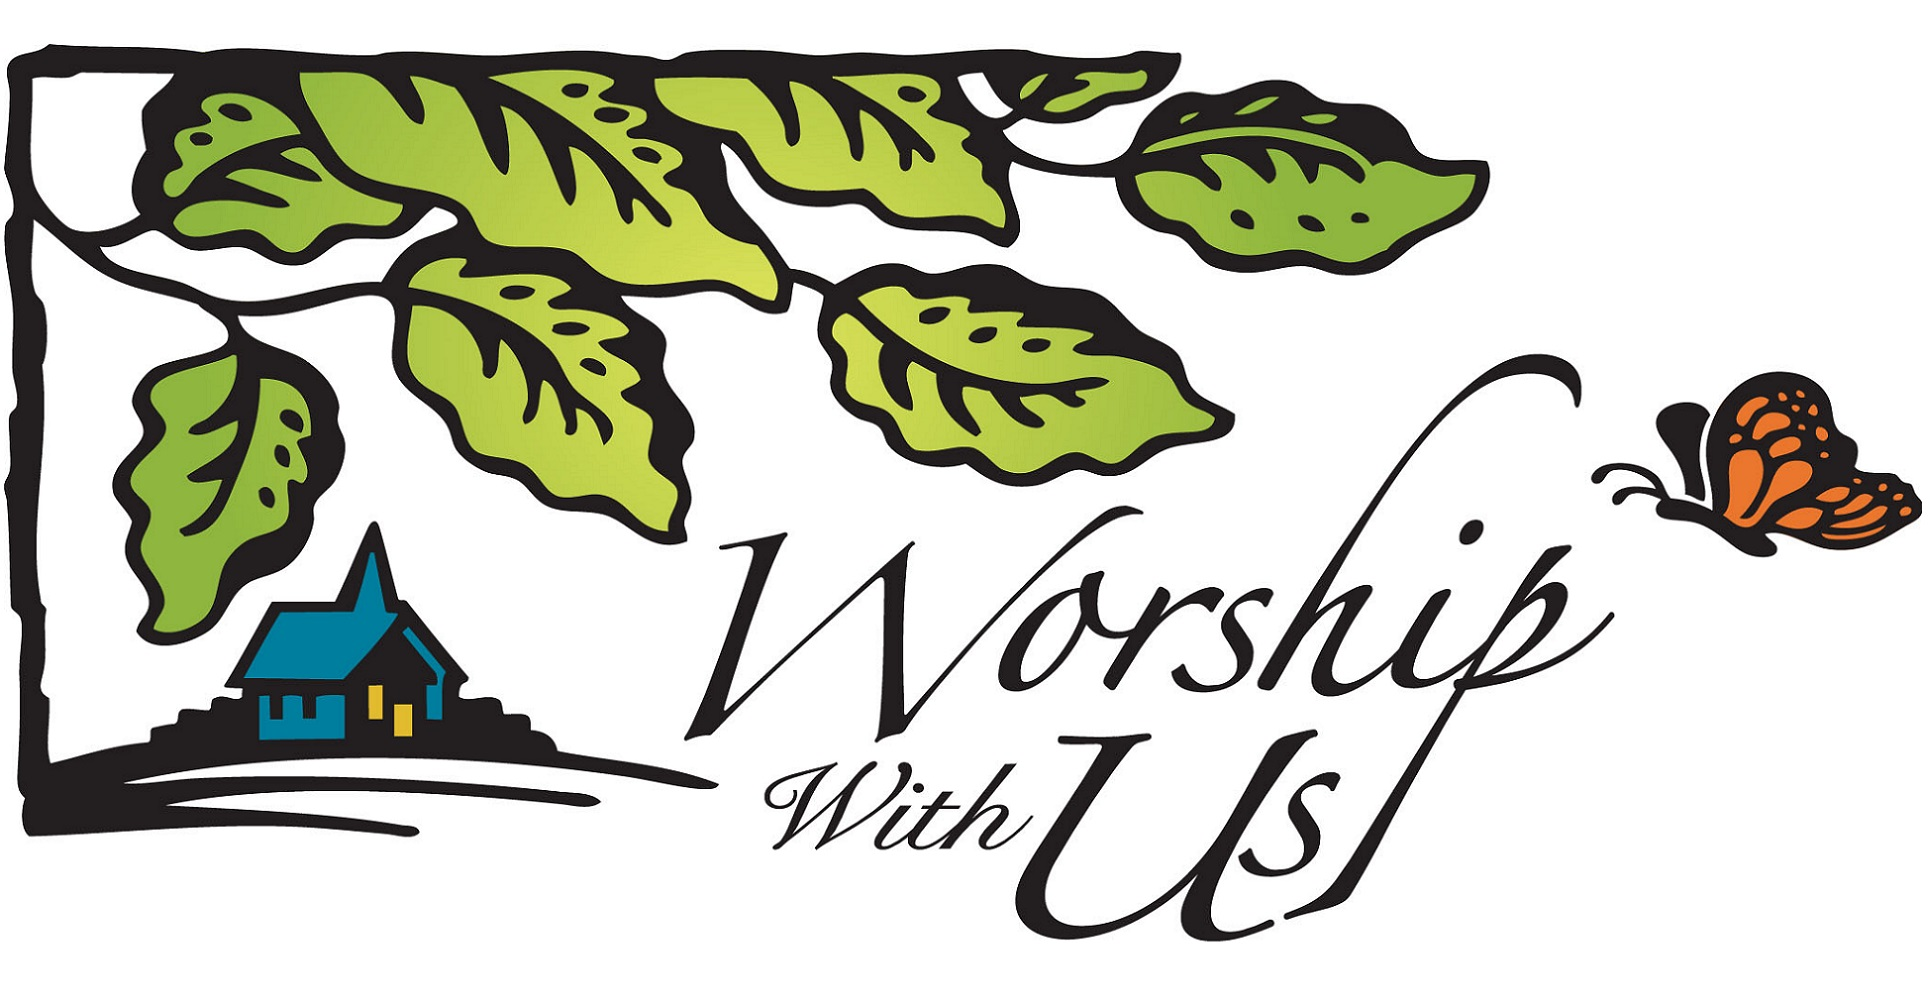 1932x982 Clinton Church Of Christ Ourselves To One Another